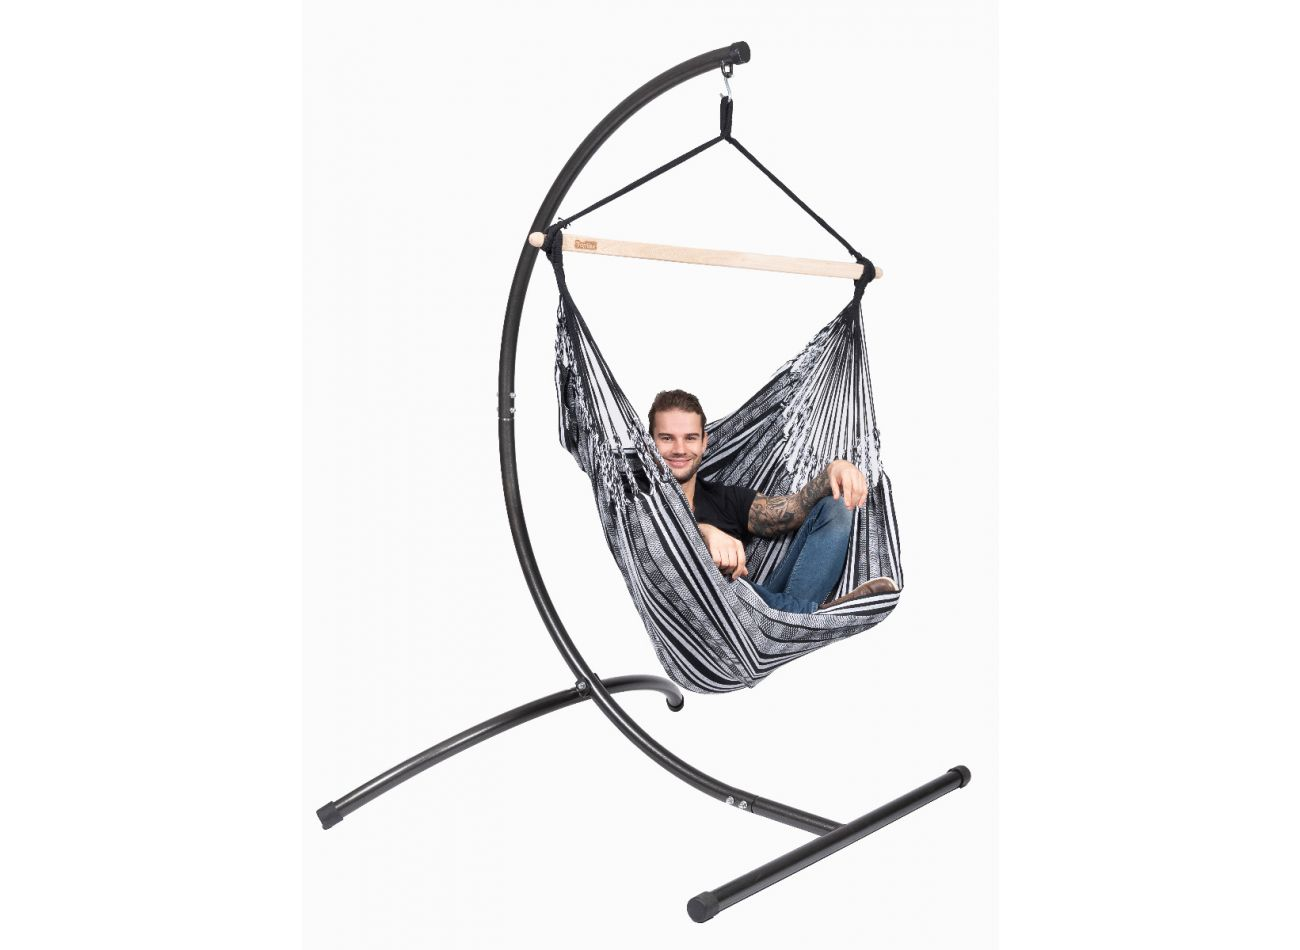 Hanging Chair 1 Person Comfort Black White